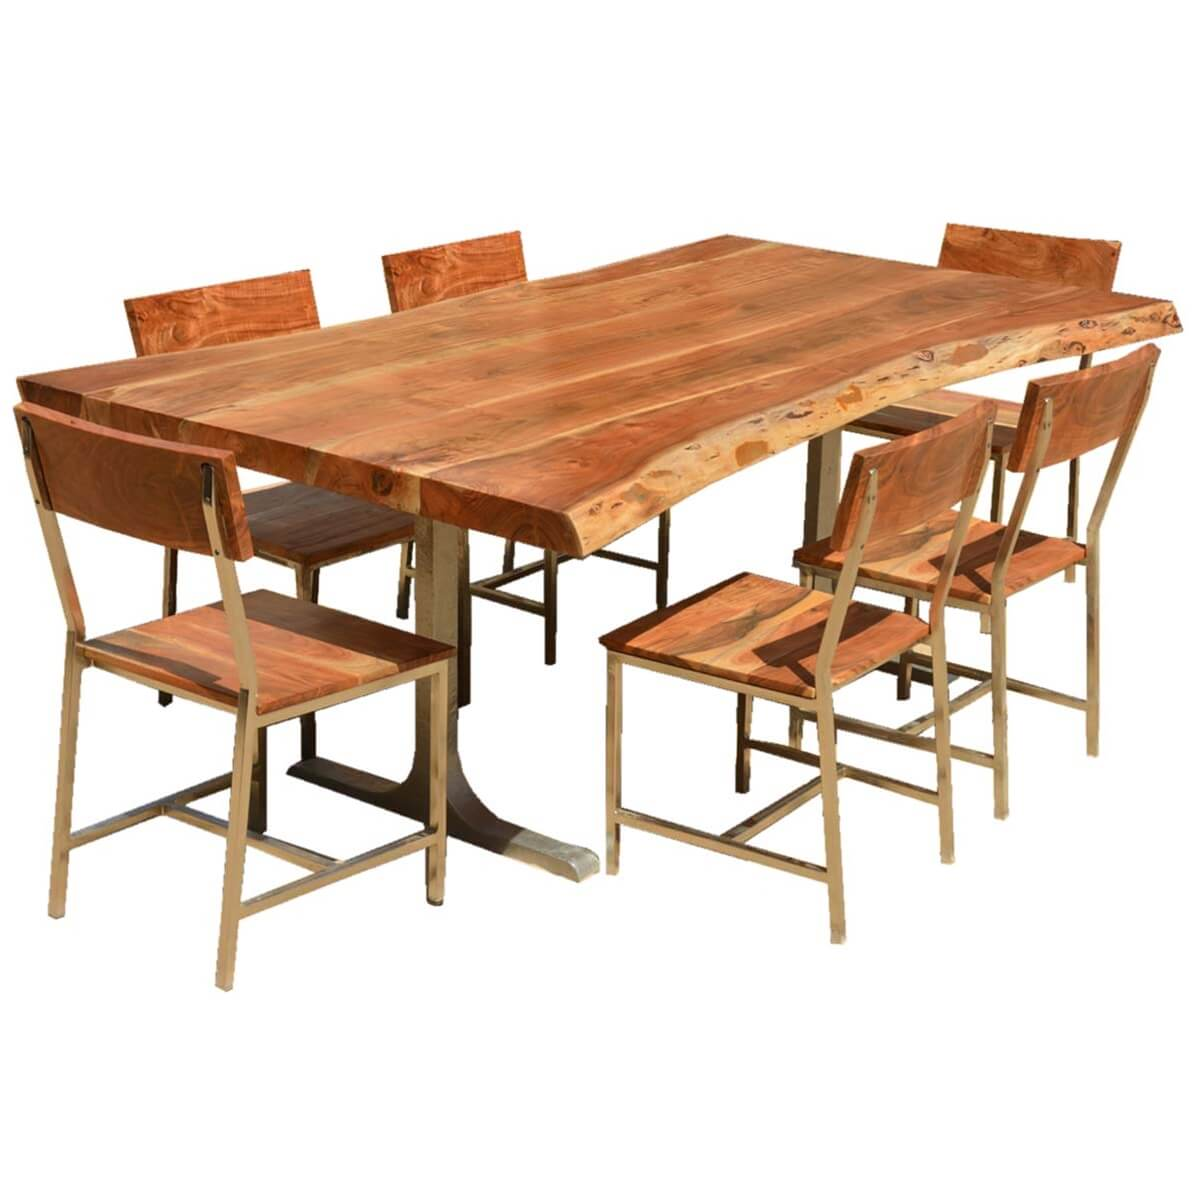 Sierra solid wood rustic live edge dining table chairs set for Solid wood dining table sets